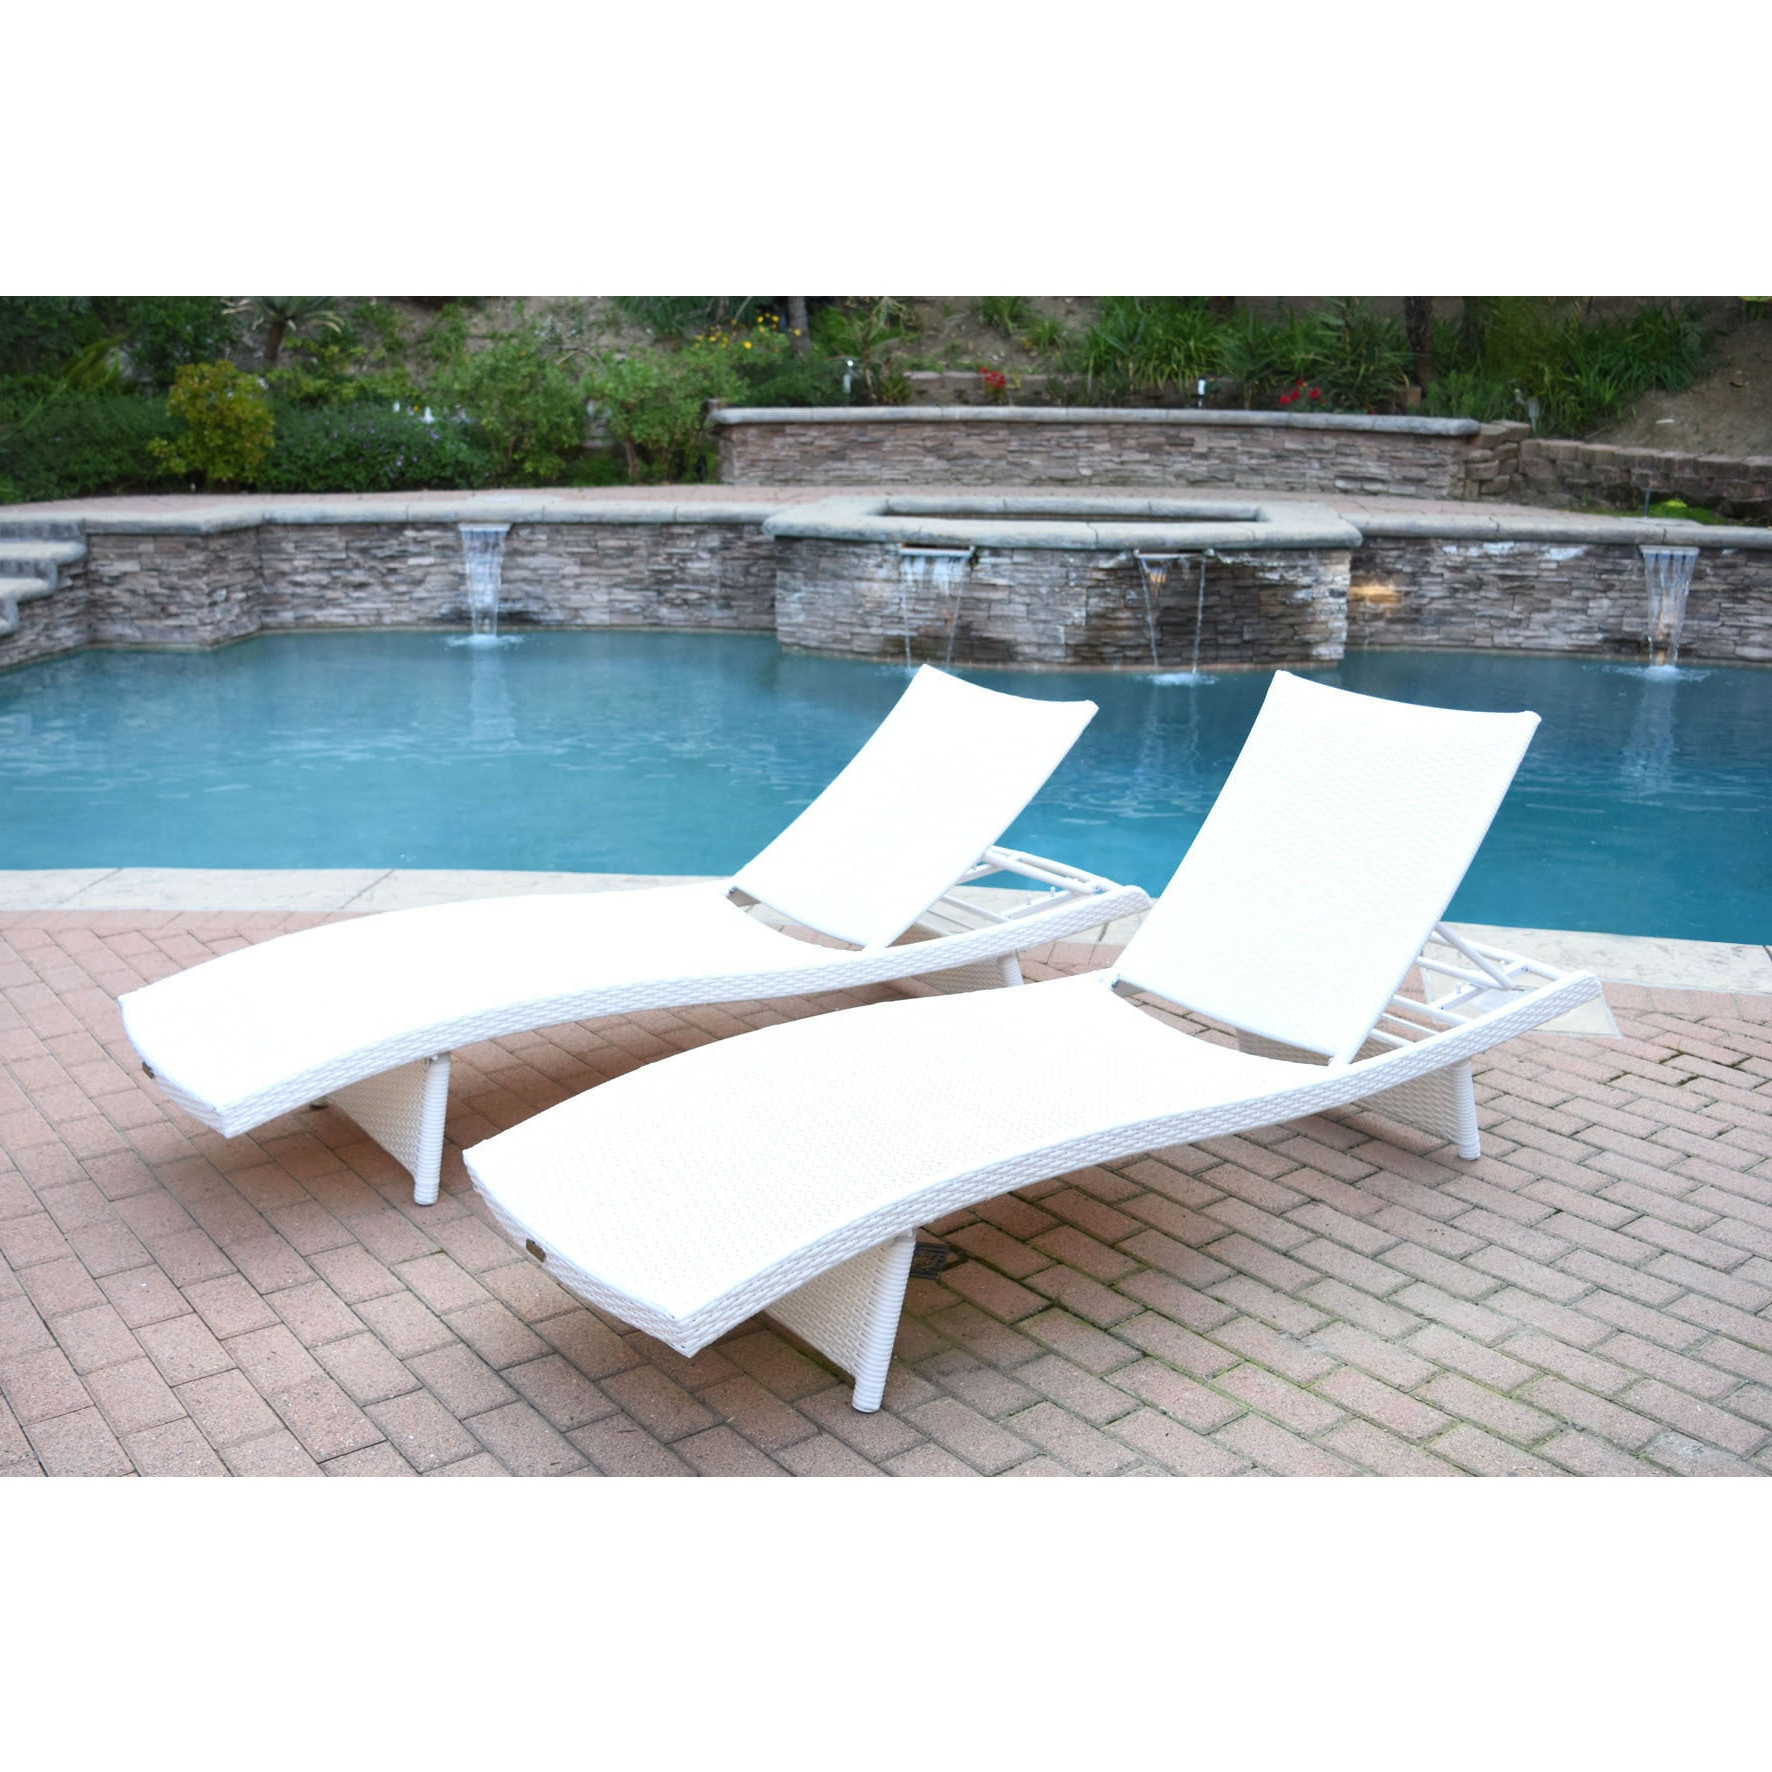 White Wicker Adjustable Chaise Lounger With Cushions (set Of 2) With Regard To Popular White Wicker Adjustable Chaise Loungers With Cushions (View 23 of 25)